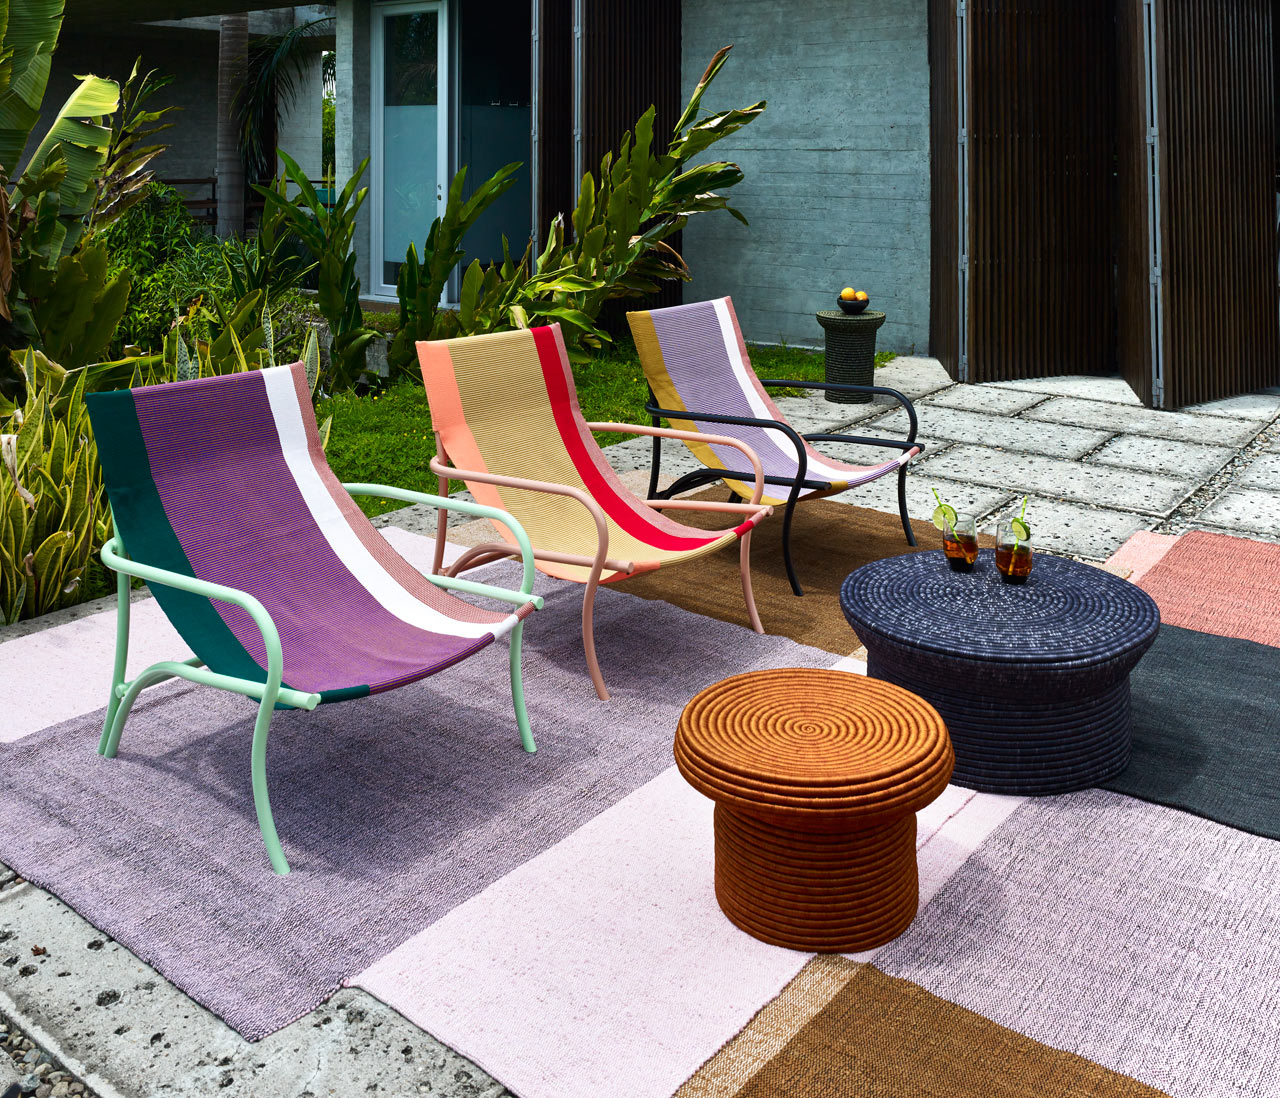 The Maraca lounge chair is inspired by the traditional Colombian hammocks and its colors and textiles show that off